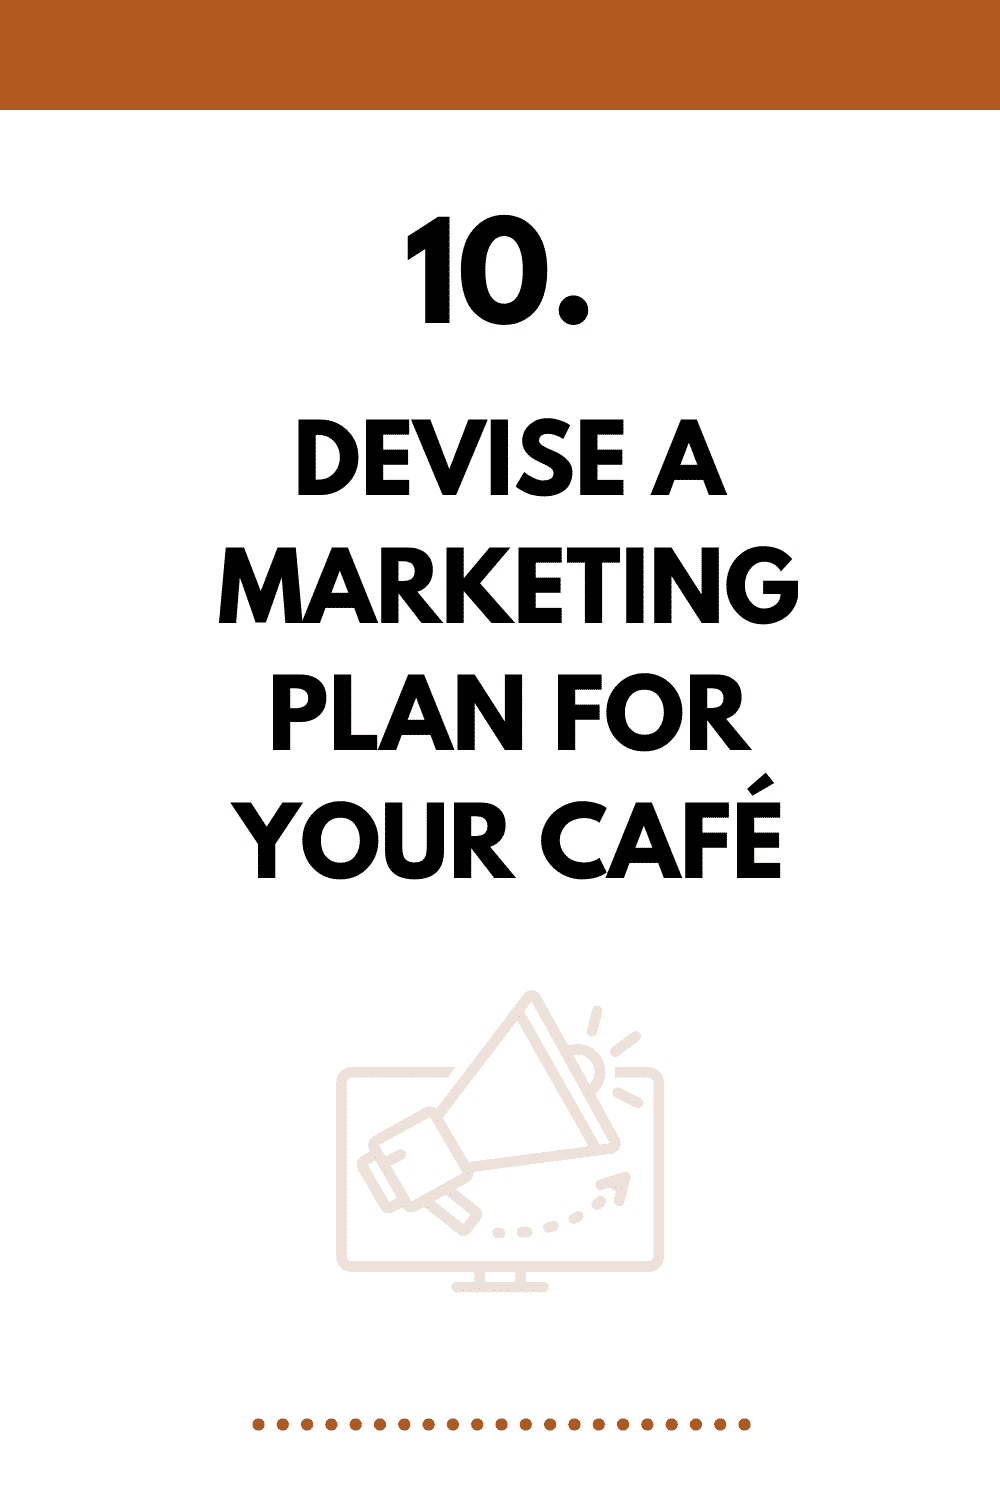 Devise a marketing plan for your cafe